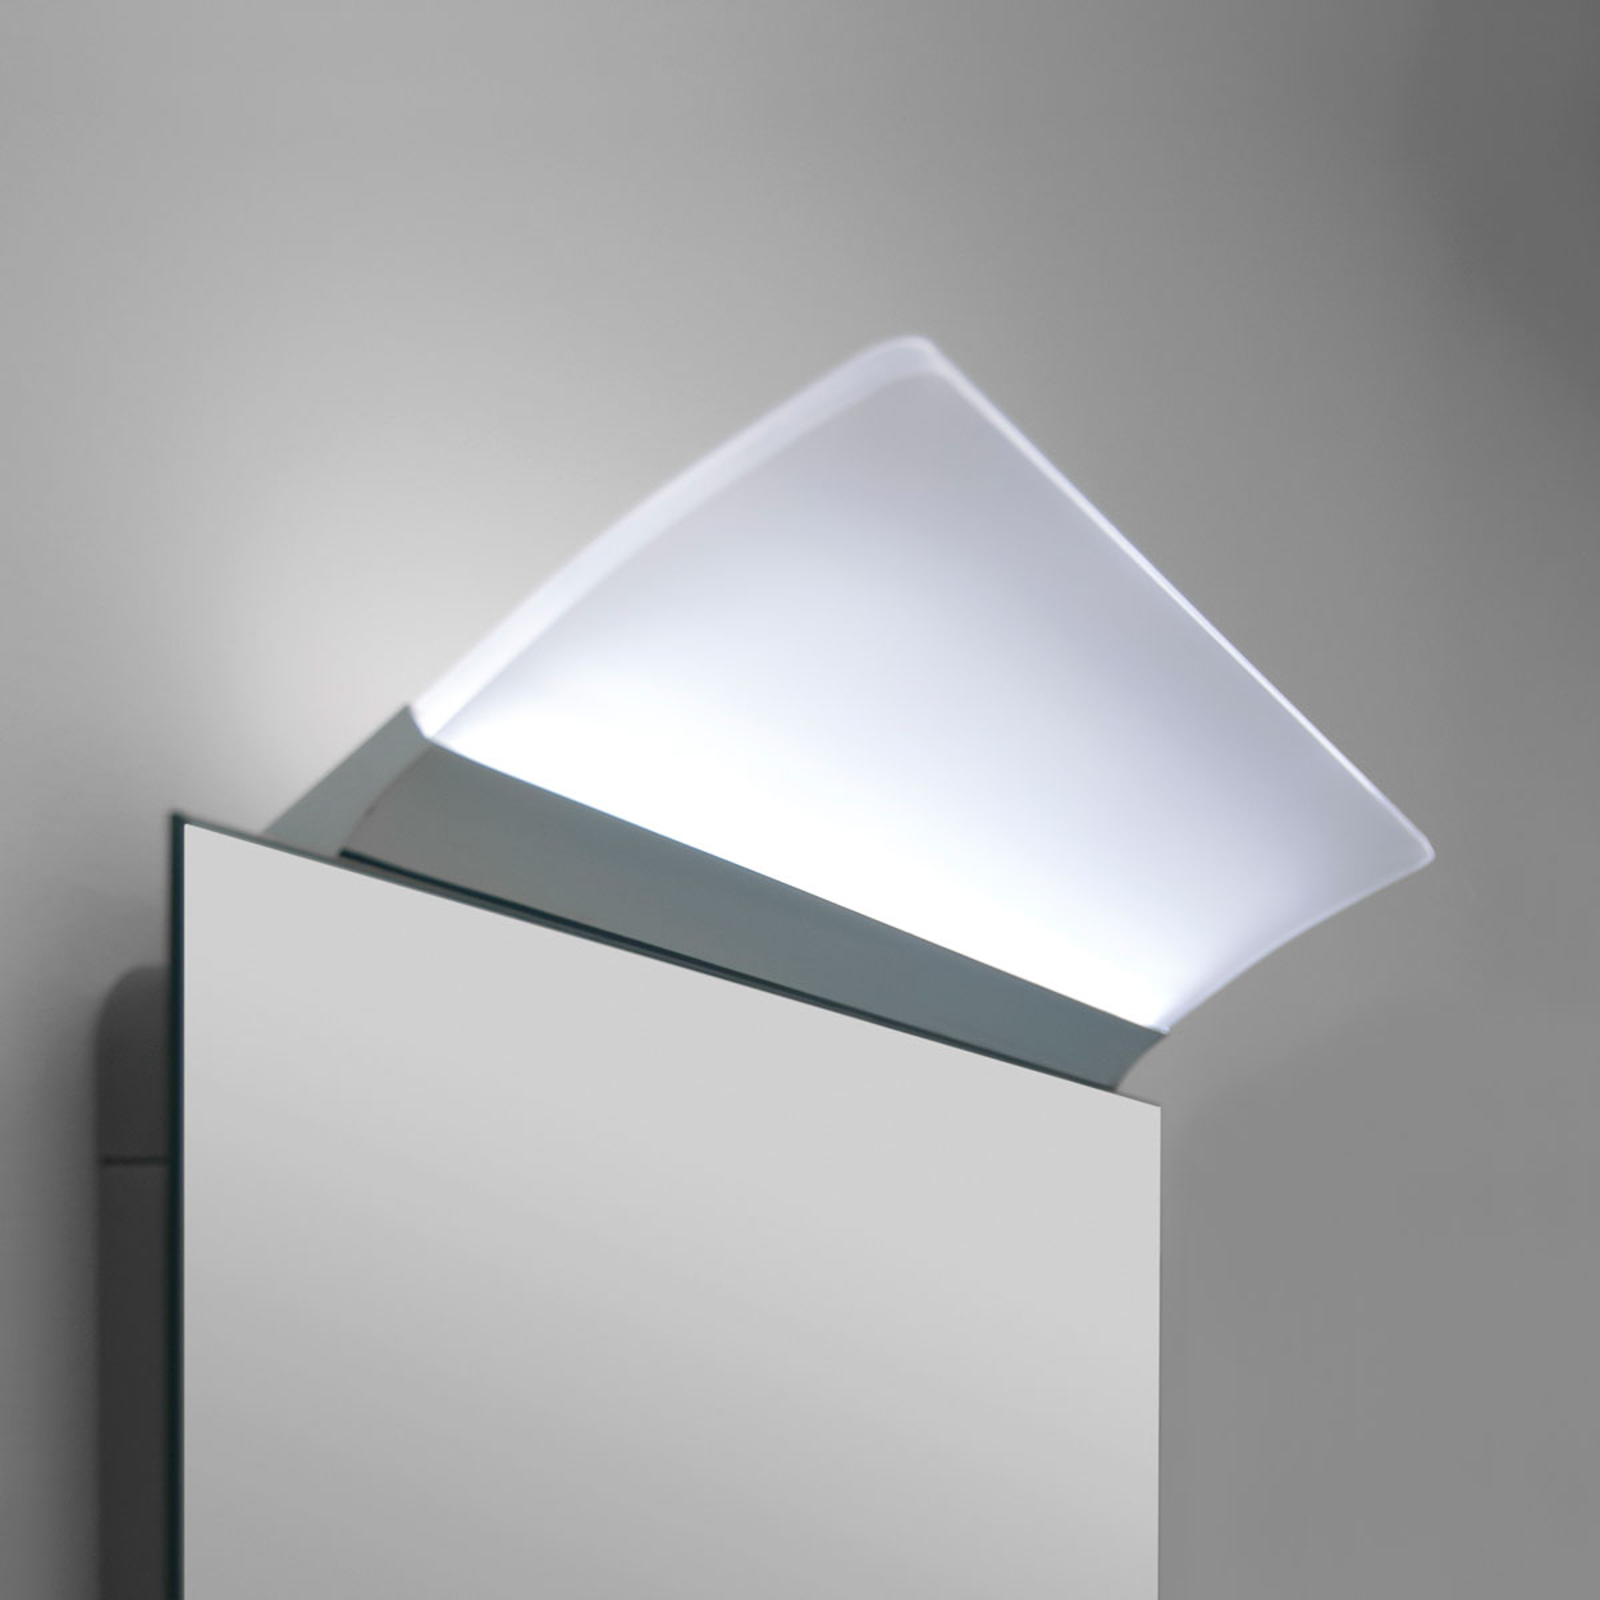 LED spiegellamp Angela, IP44, 30 cm